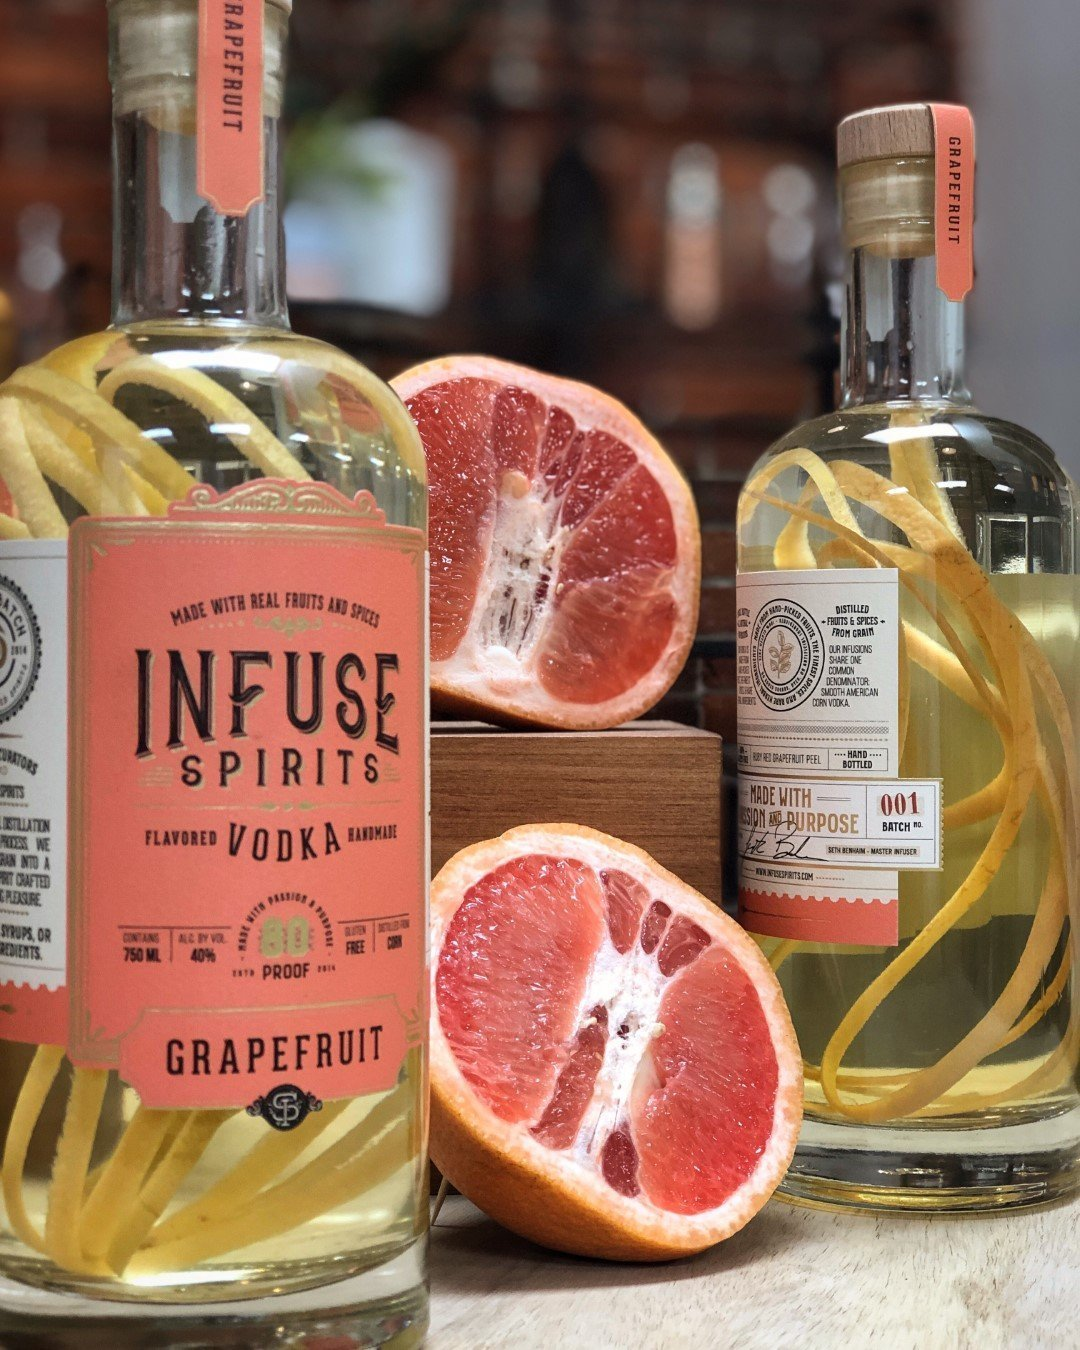 Review: Infuse Spirits Grapefruit Vodka